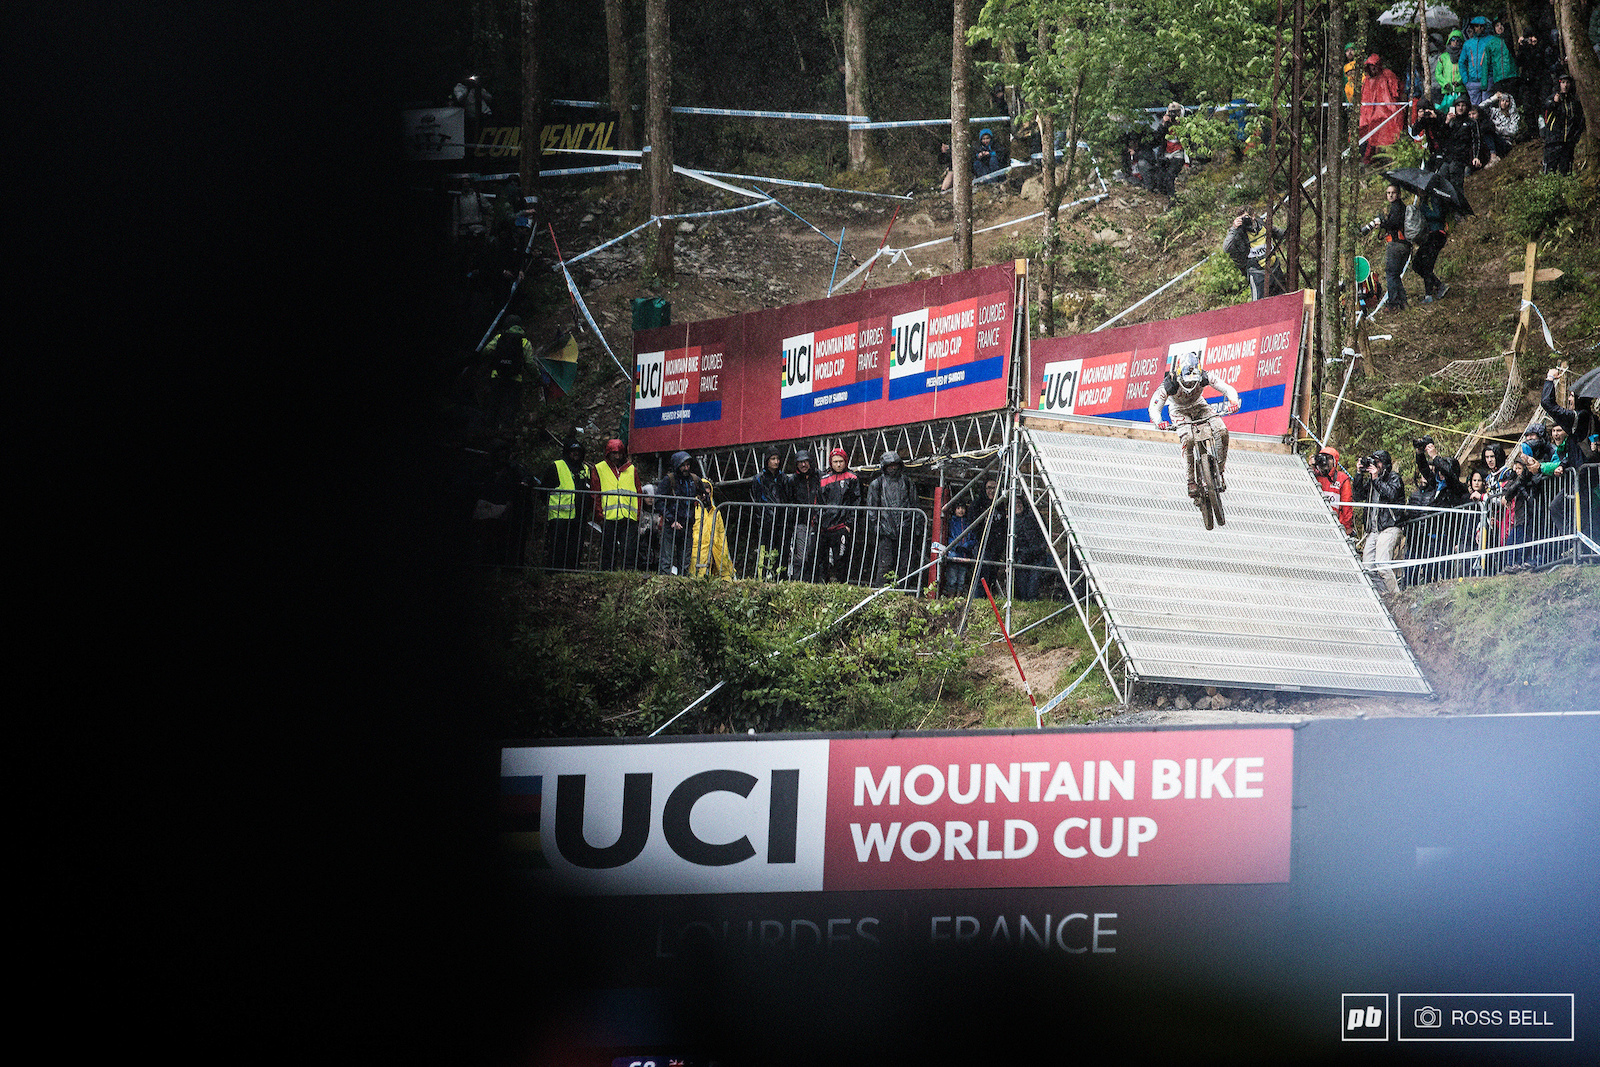 Two years on the trot misfortune has kept Loic off the podium in Lourdes.